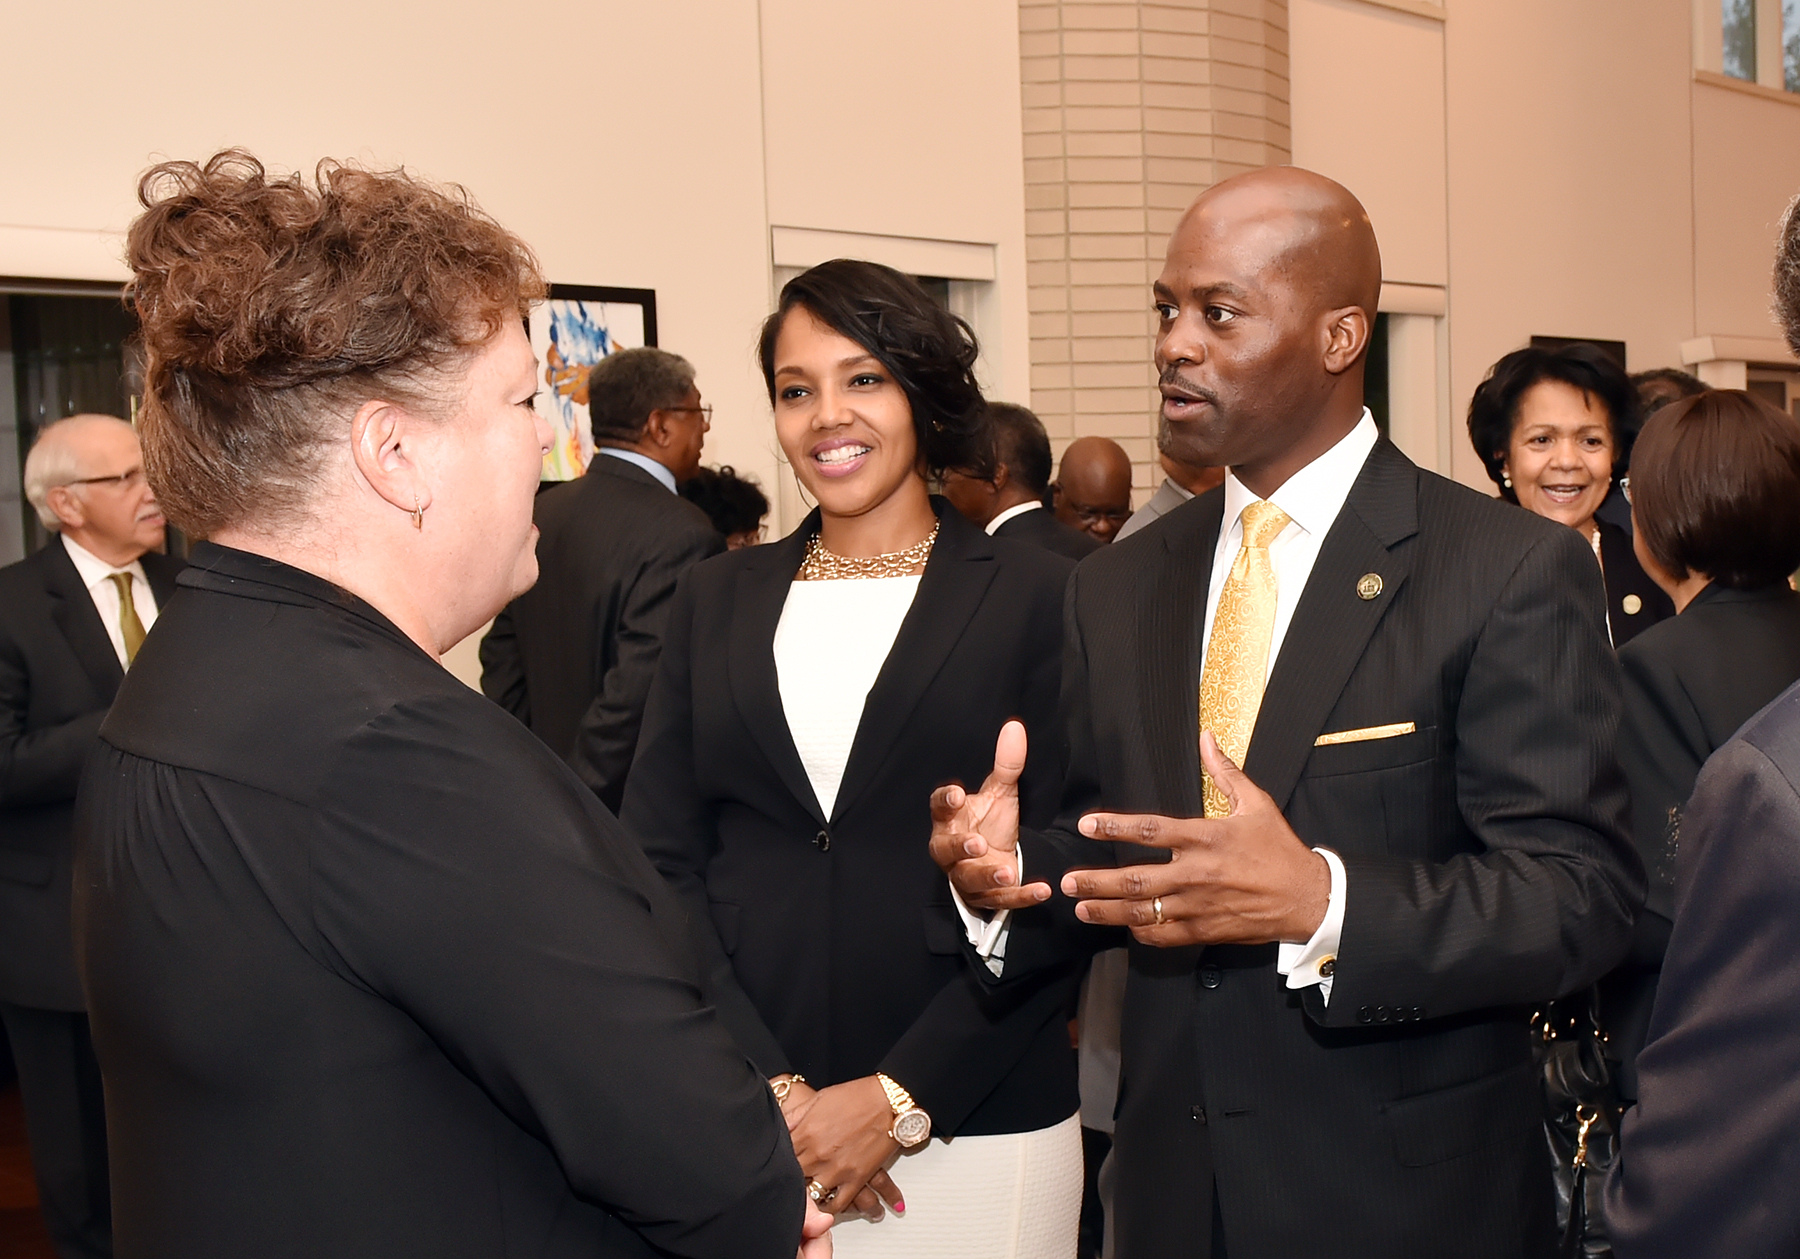 President Jenkins and First Lady Jenkins meet with President's Circle members